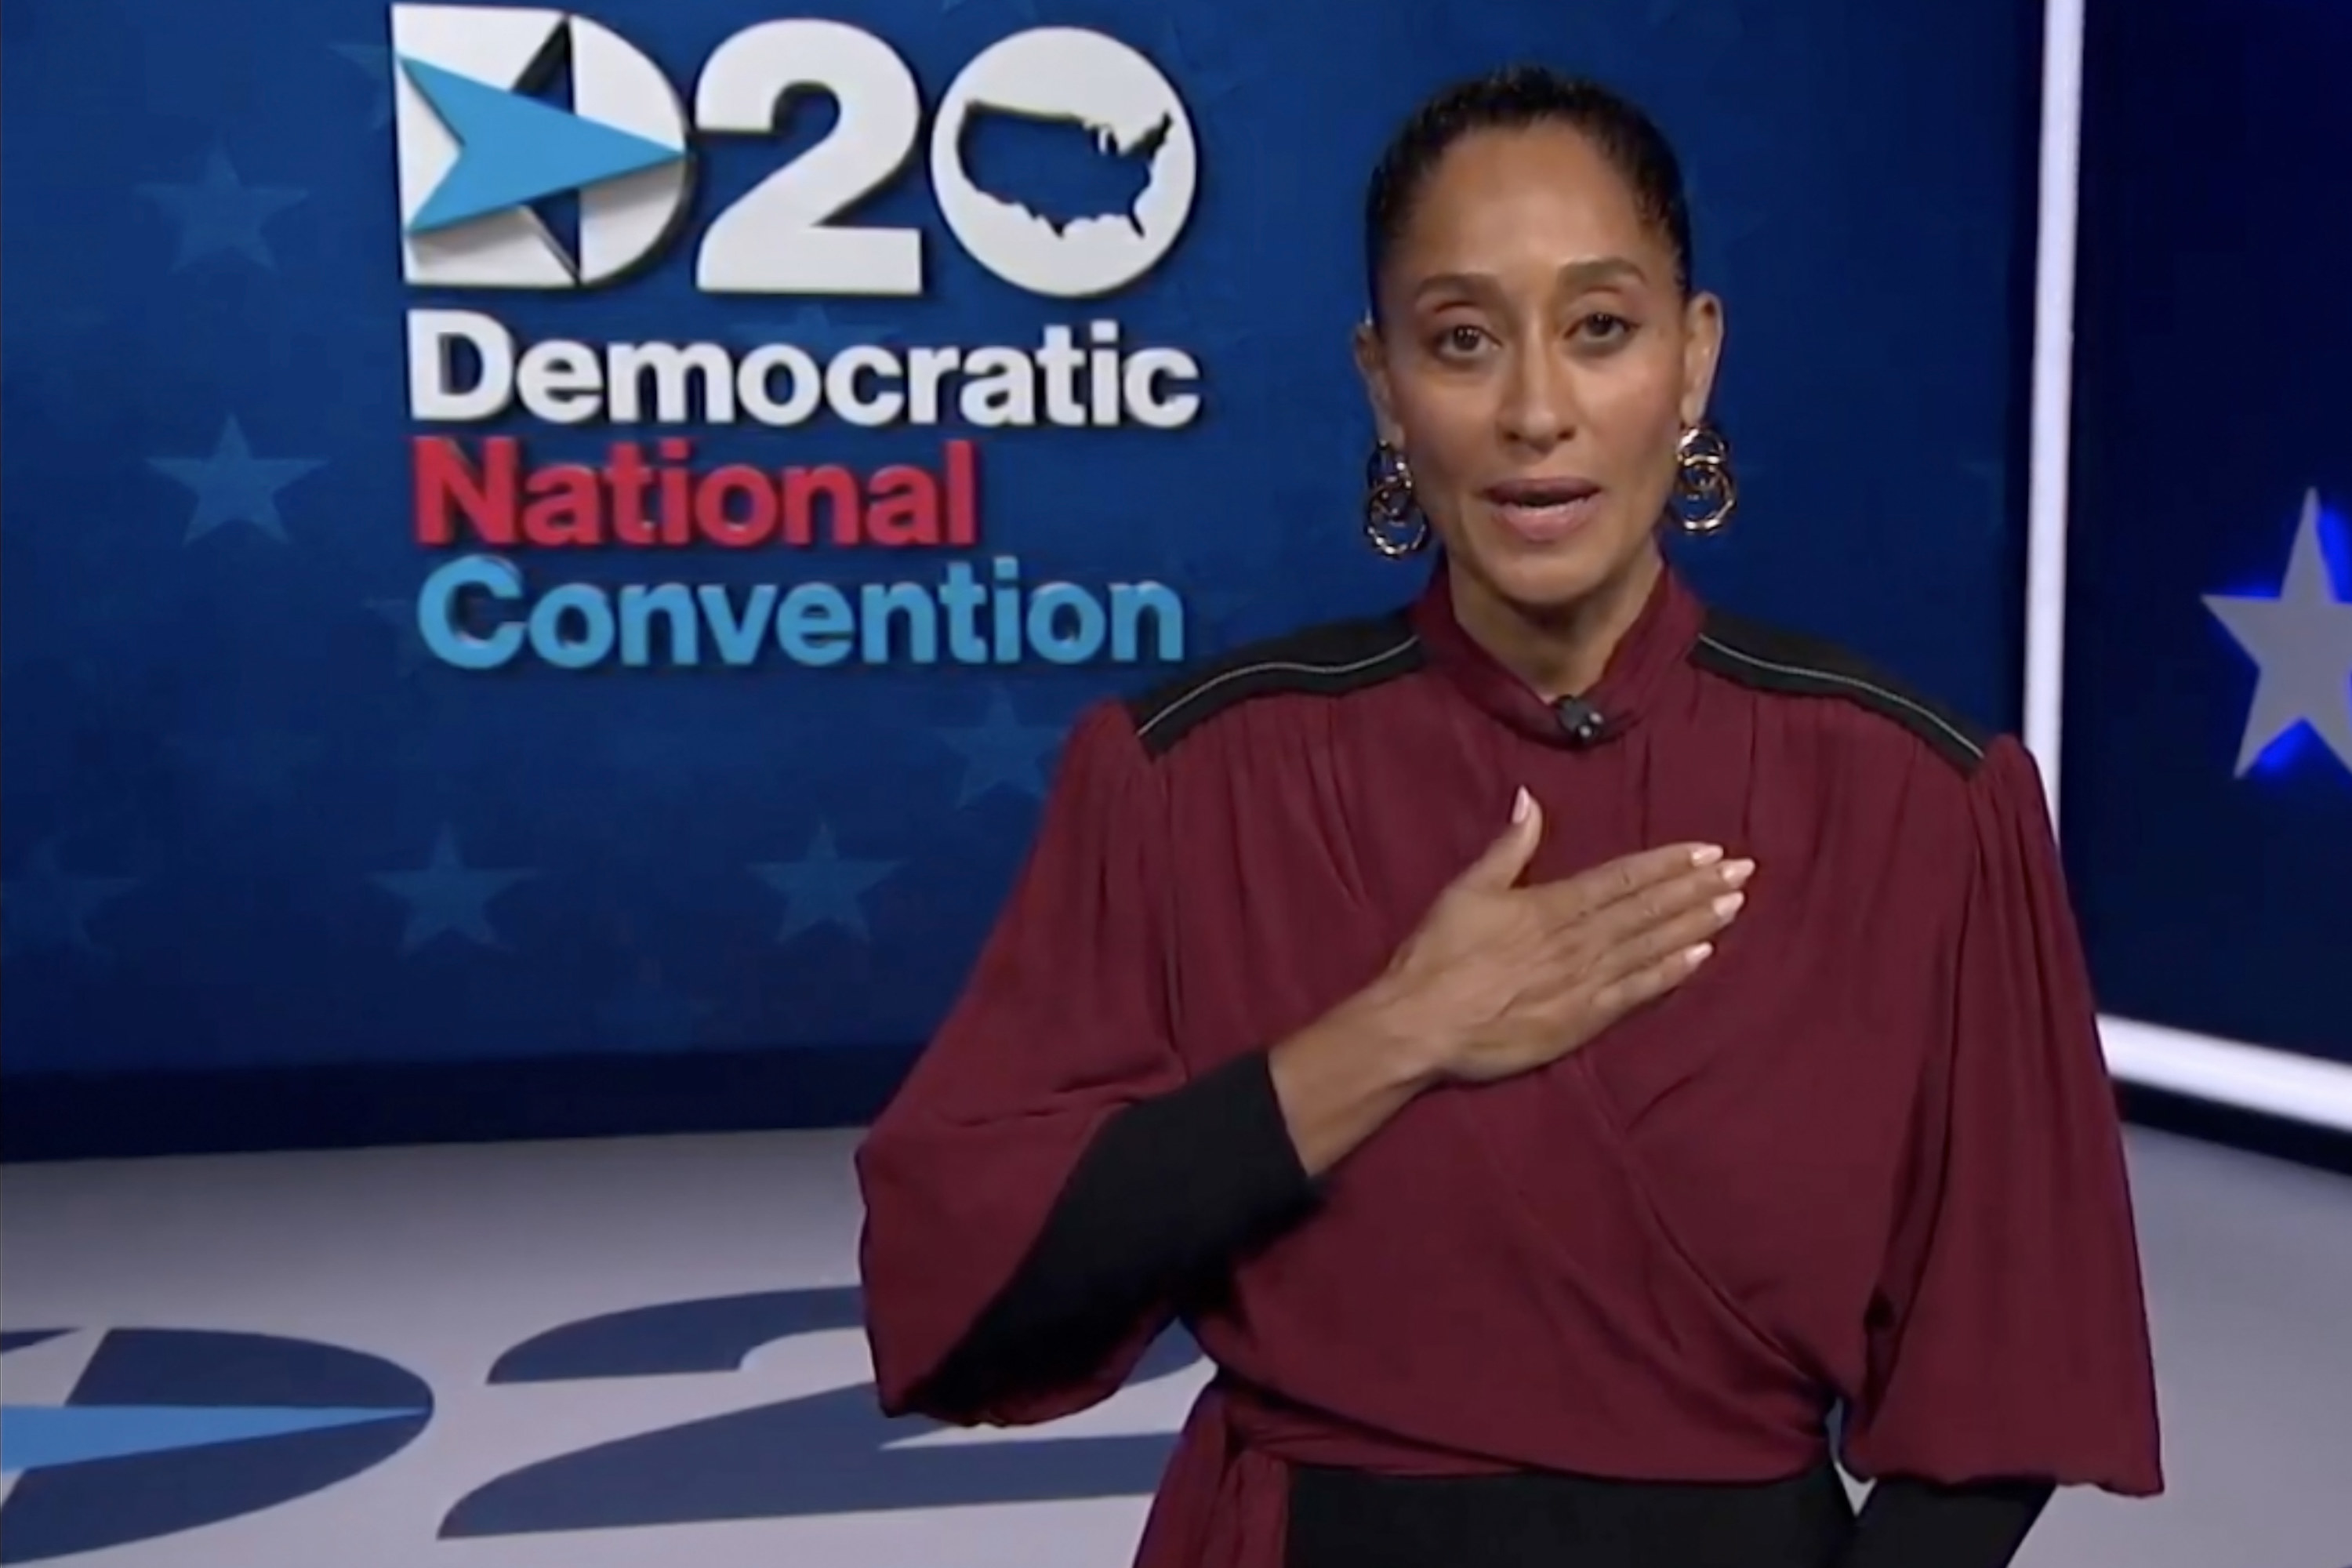 Tracee with her hand over her heart while speaking at the 2020 Democratic National Convention